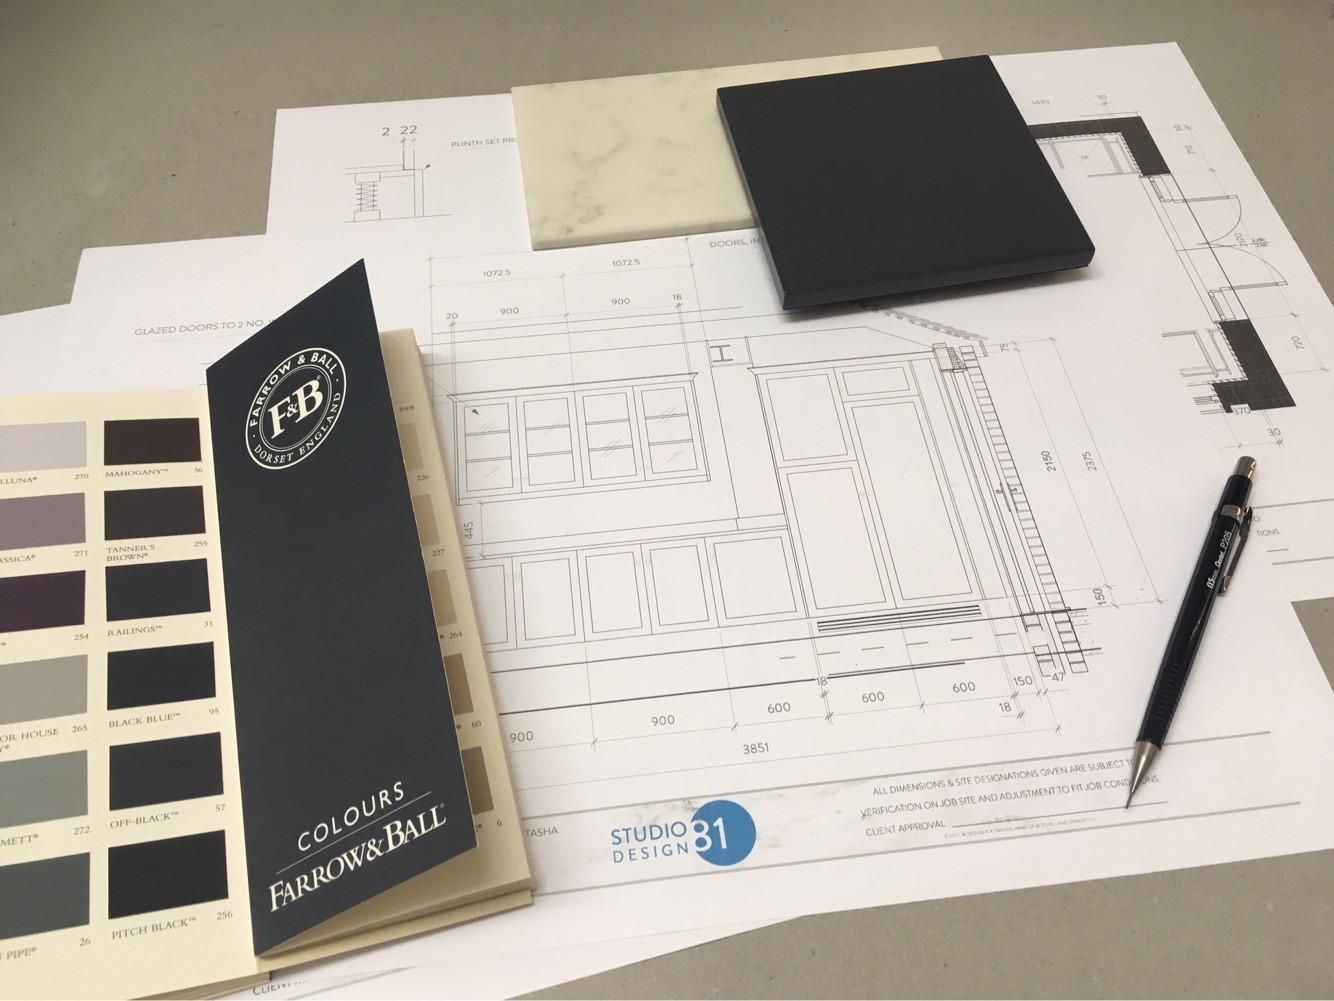 Kitchen Design Inspiration - planning drawings